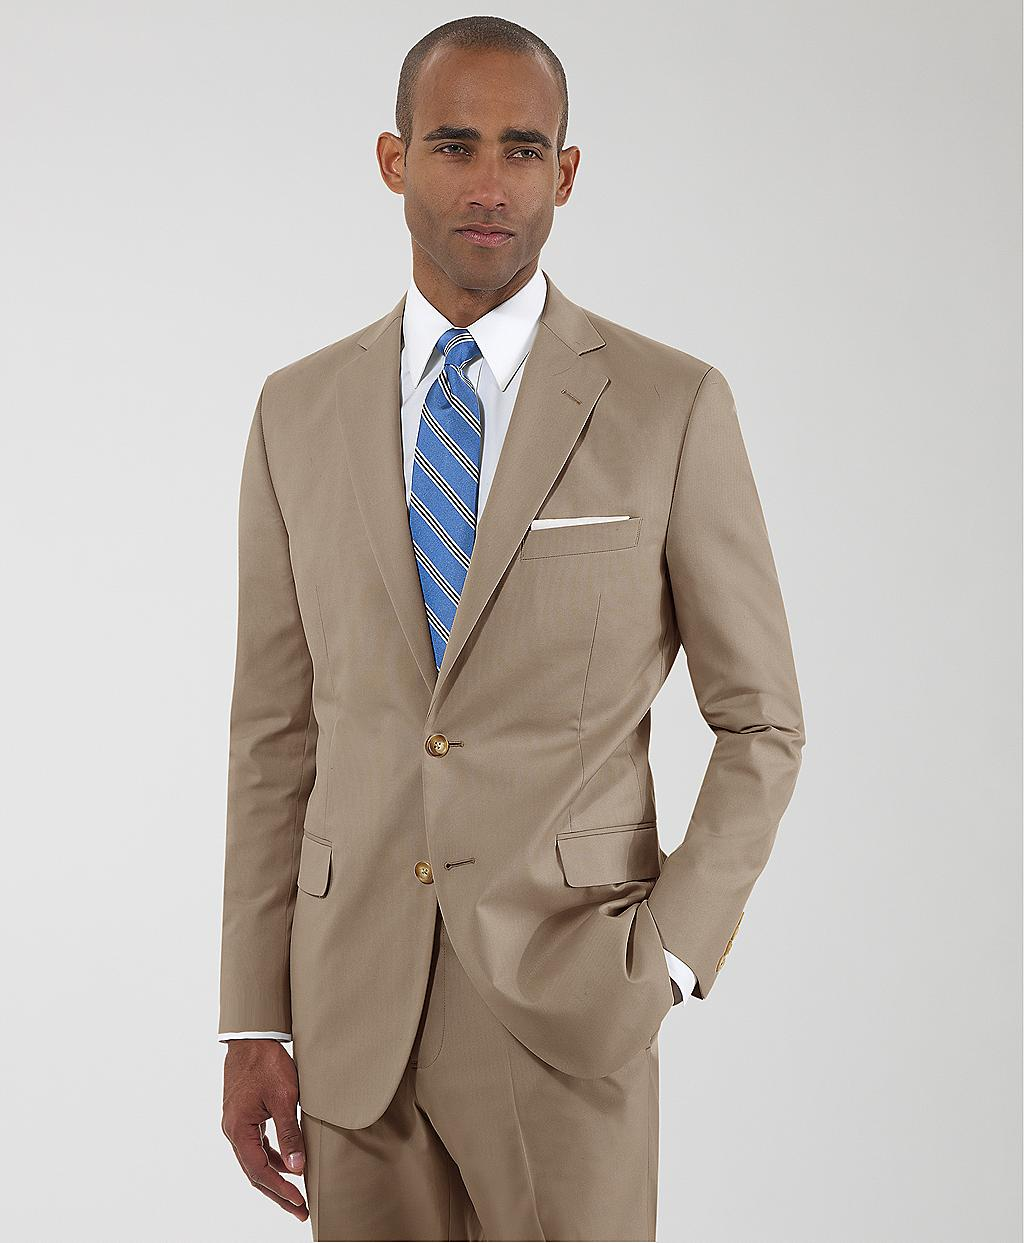 Best Suit for $500 - Brooks Brother Suits - Style Advice